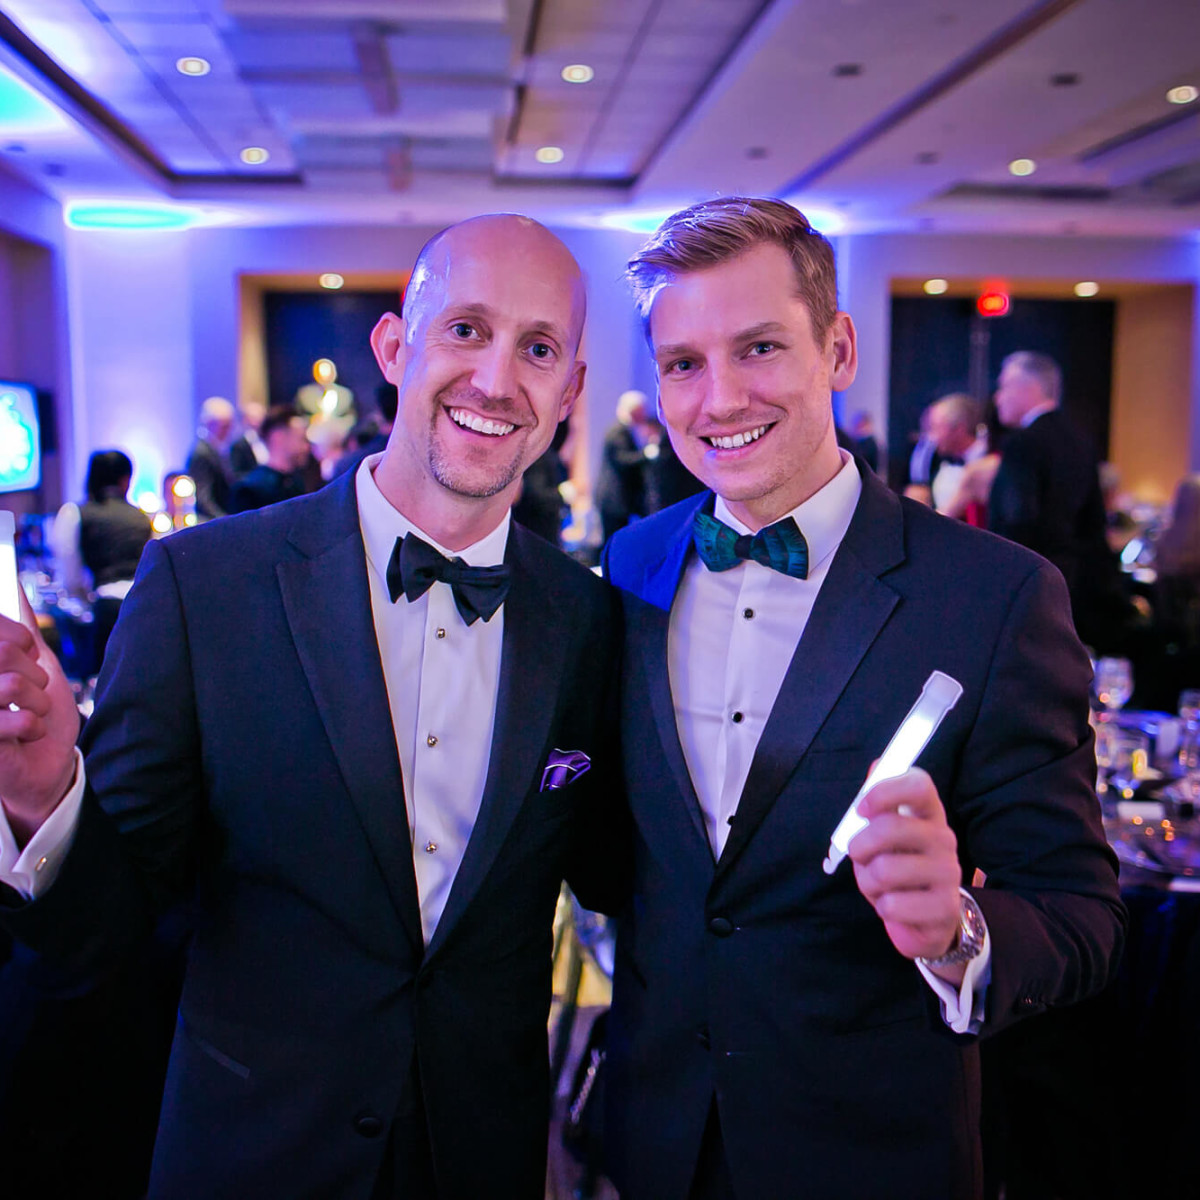 Houston, Sing for Hope gala, Nov. 2016, Mike Mahlstedt, Kyle Dutton